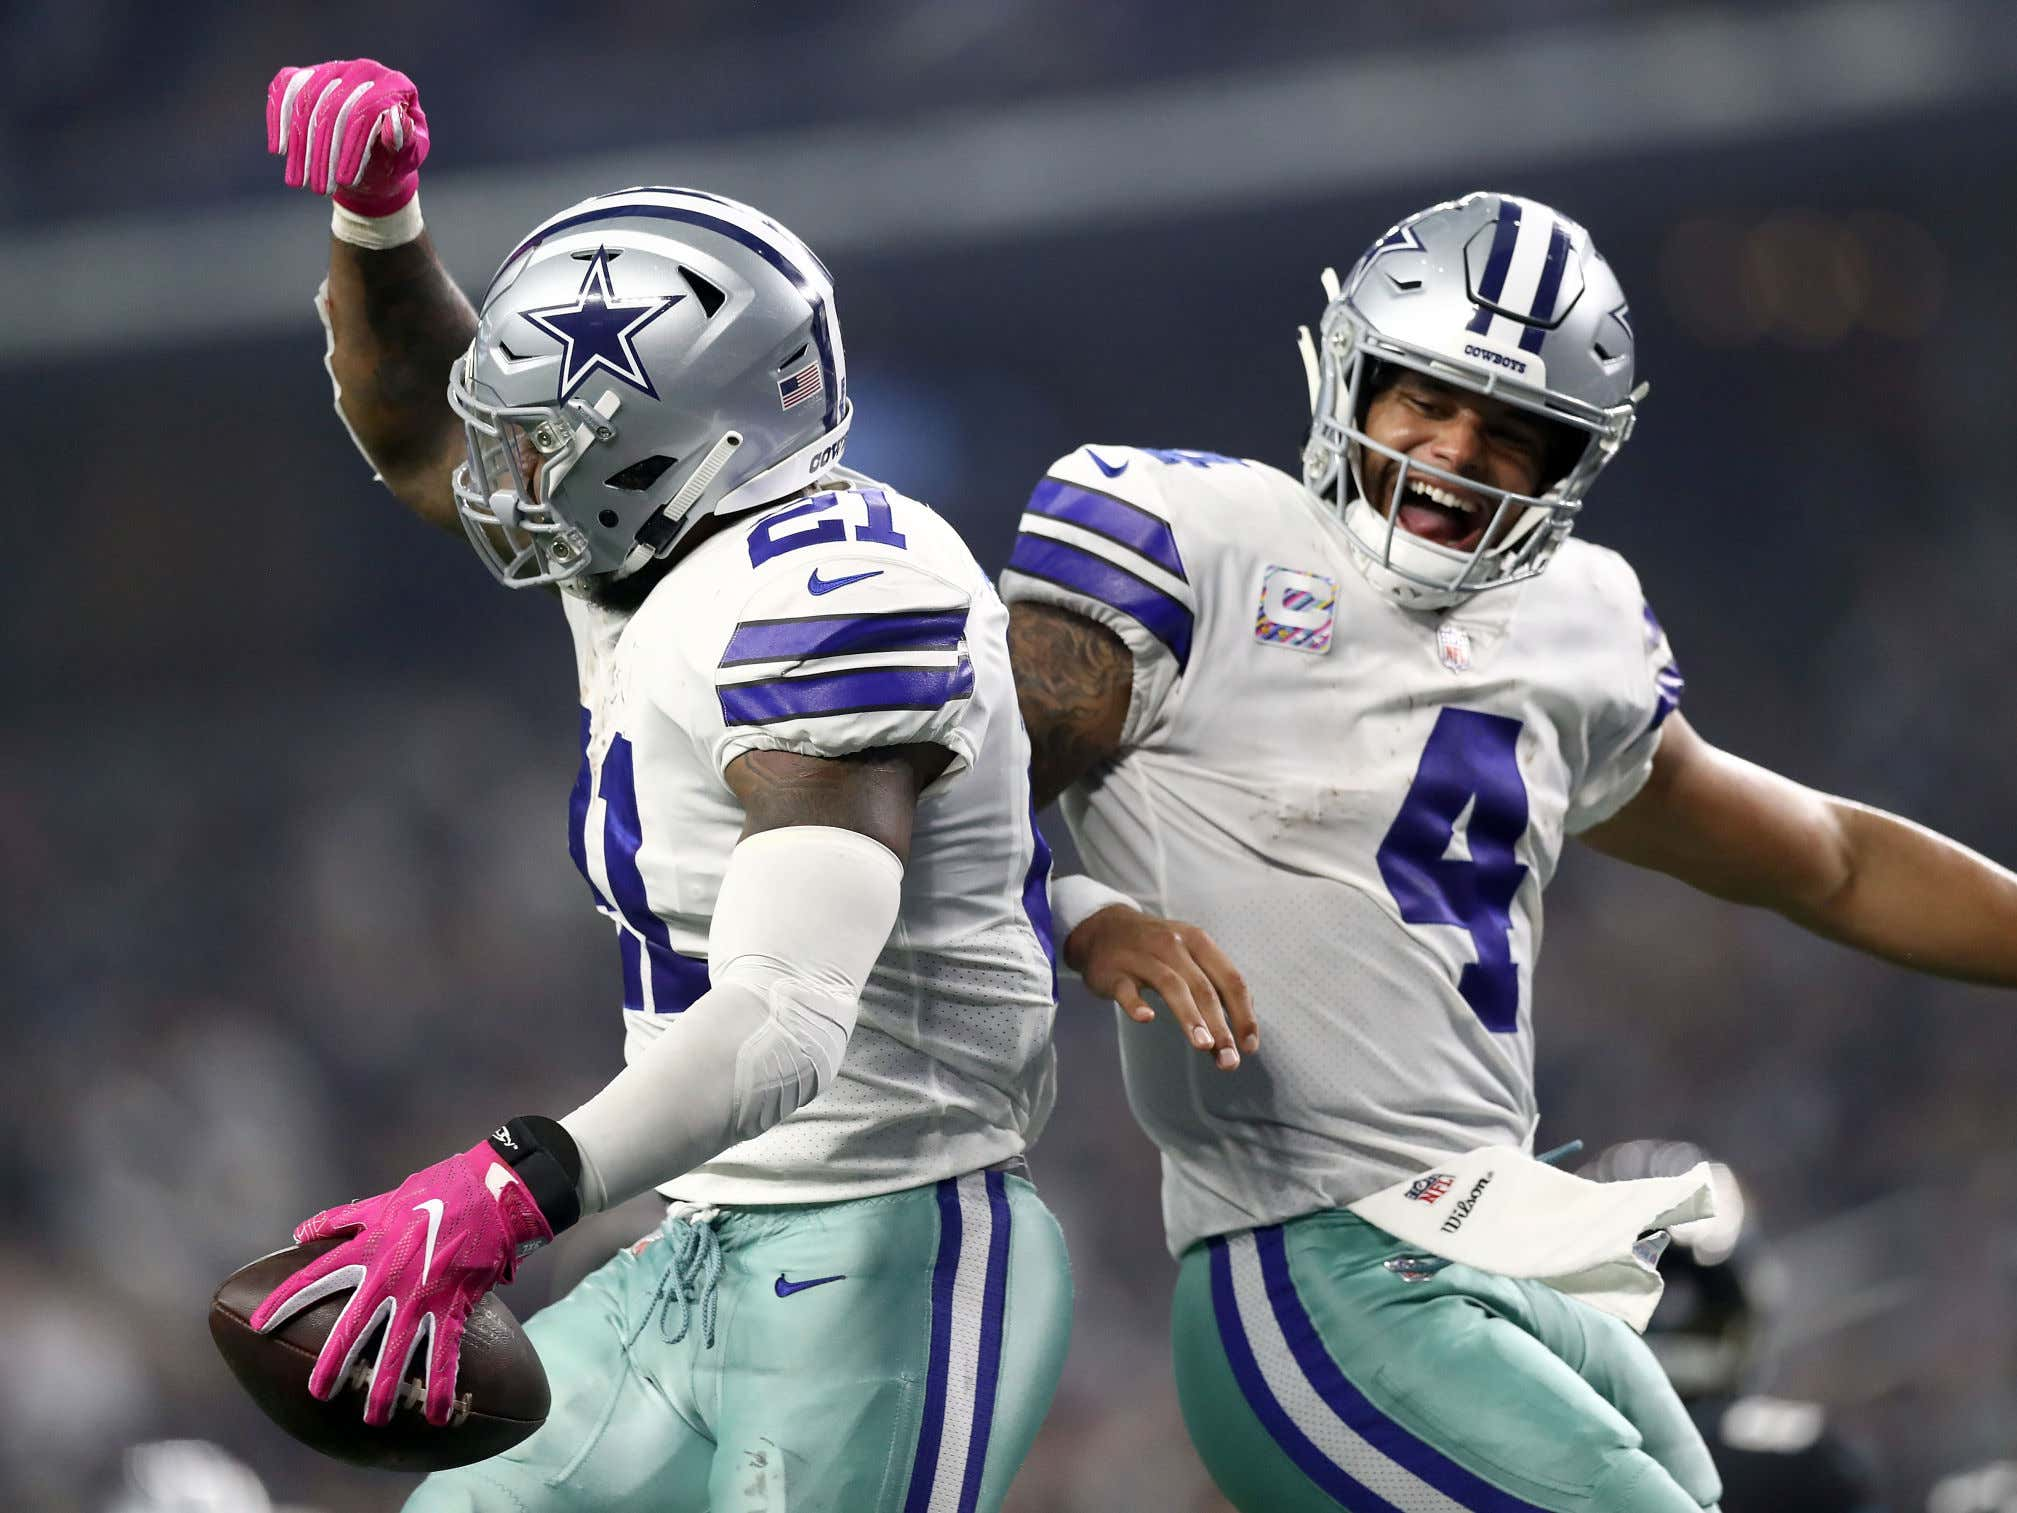 HOLY FUCK the Cowboys Just Staged One Of The Greatest Comebacks EVER